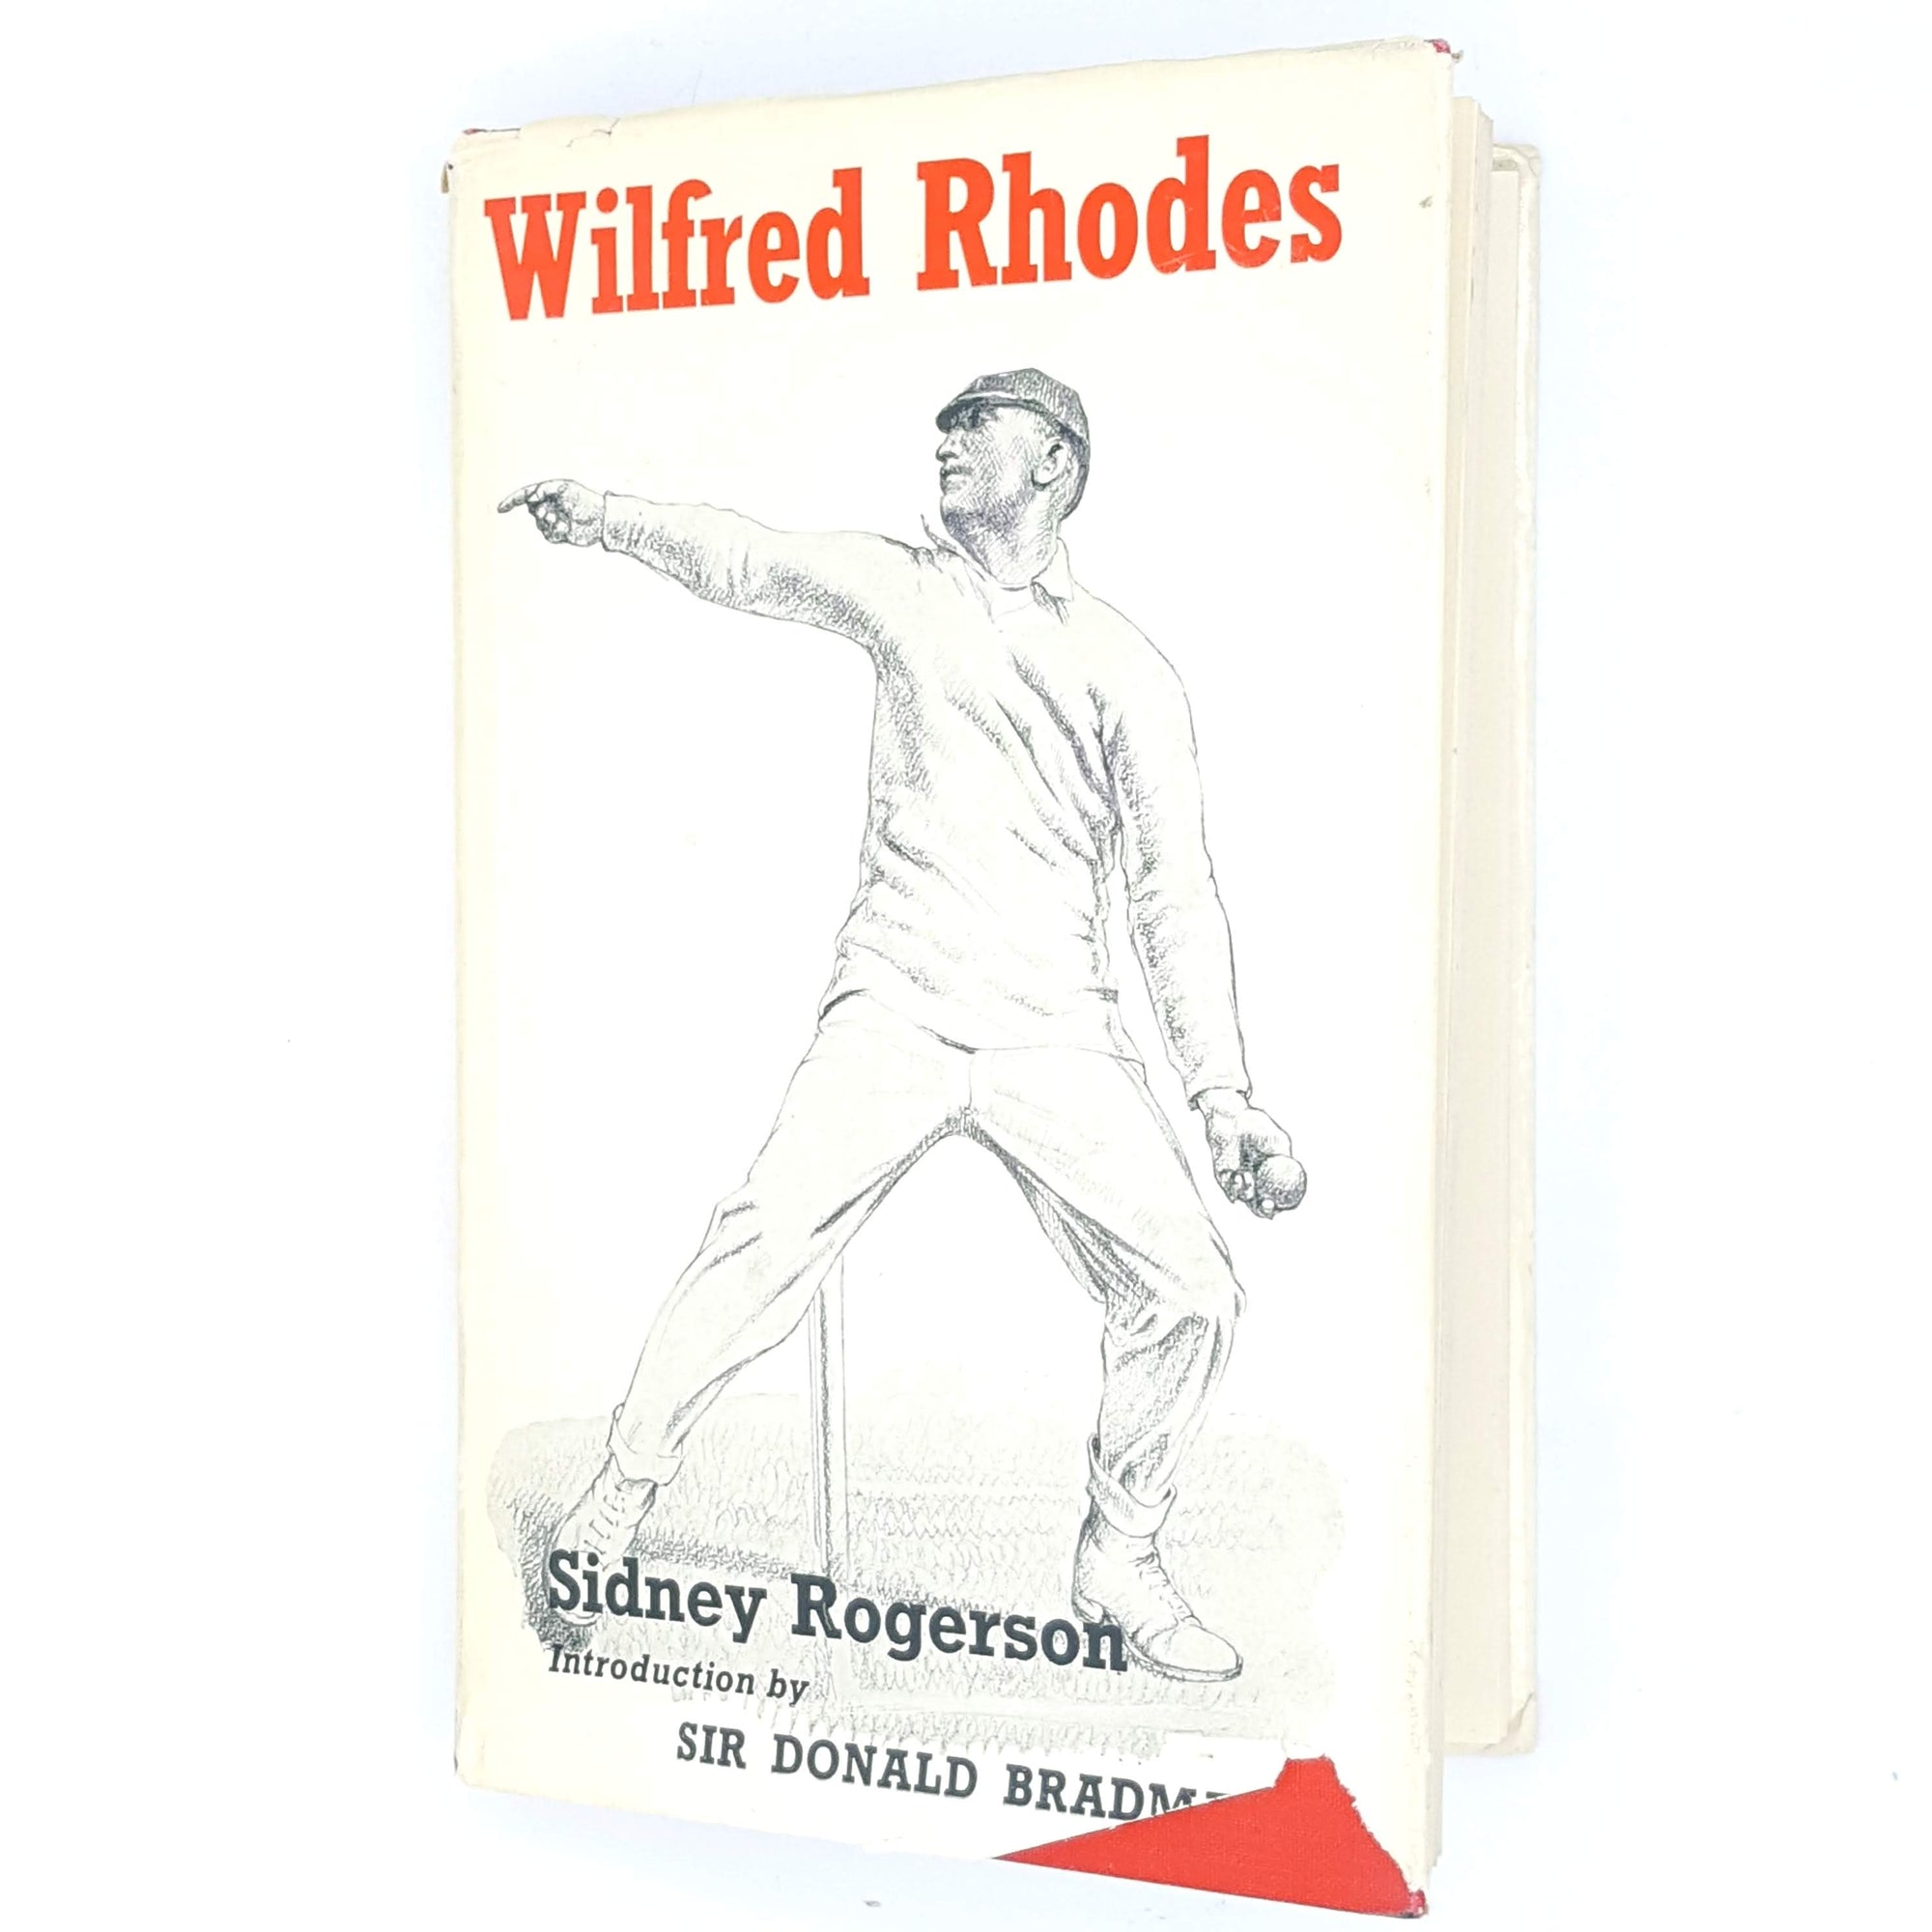 Wilfred Rhodes by Sidney Rogerson 1960